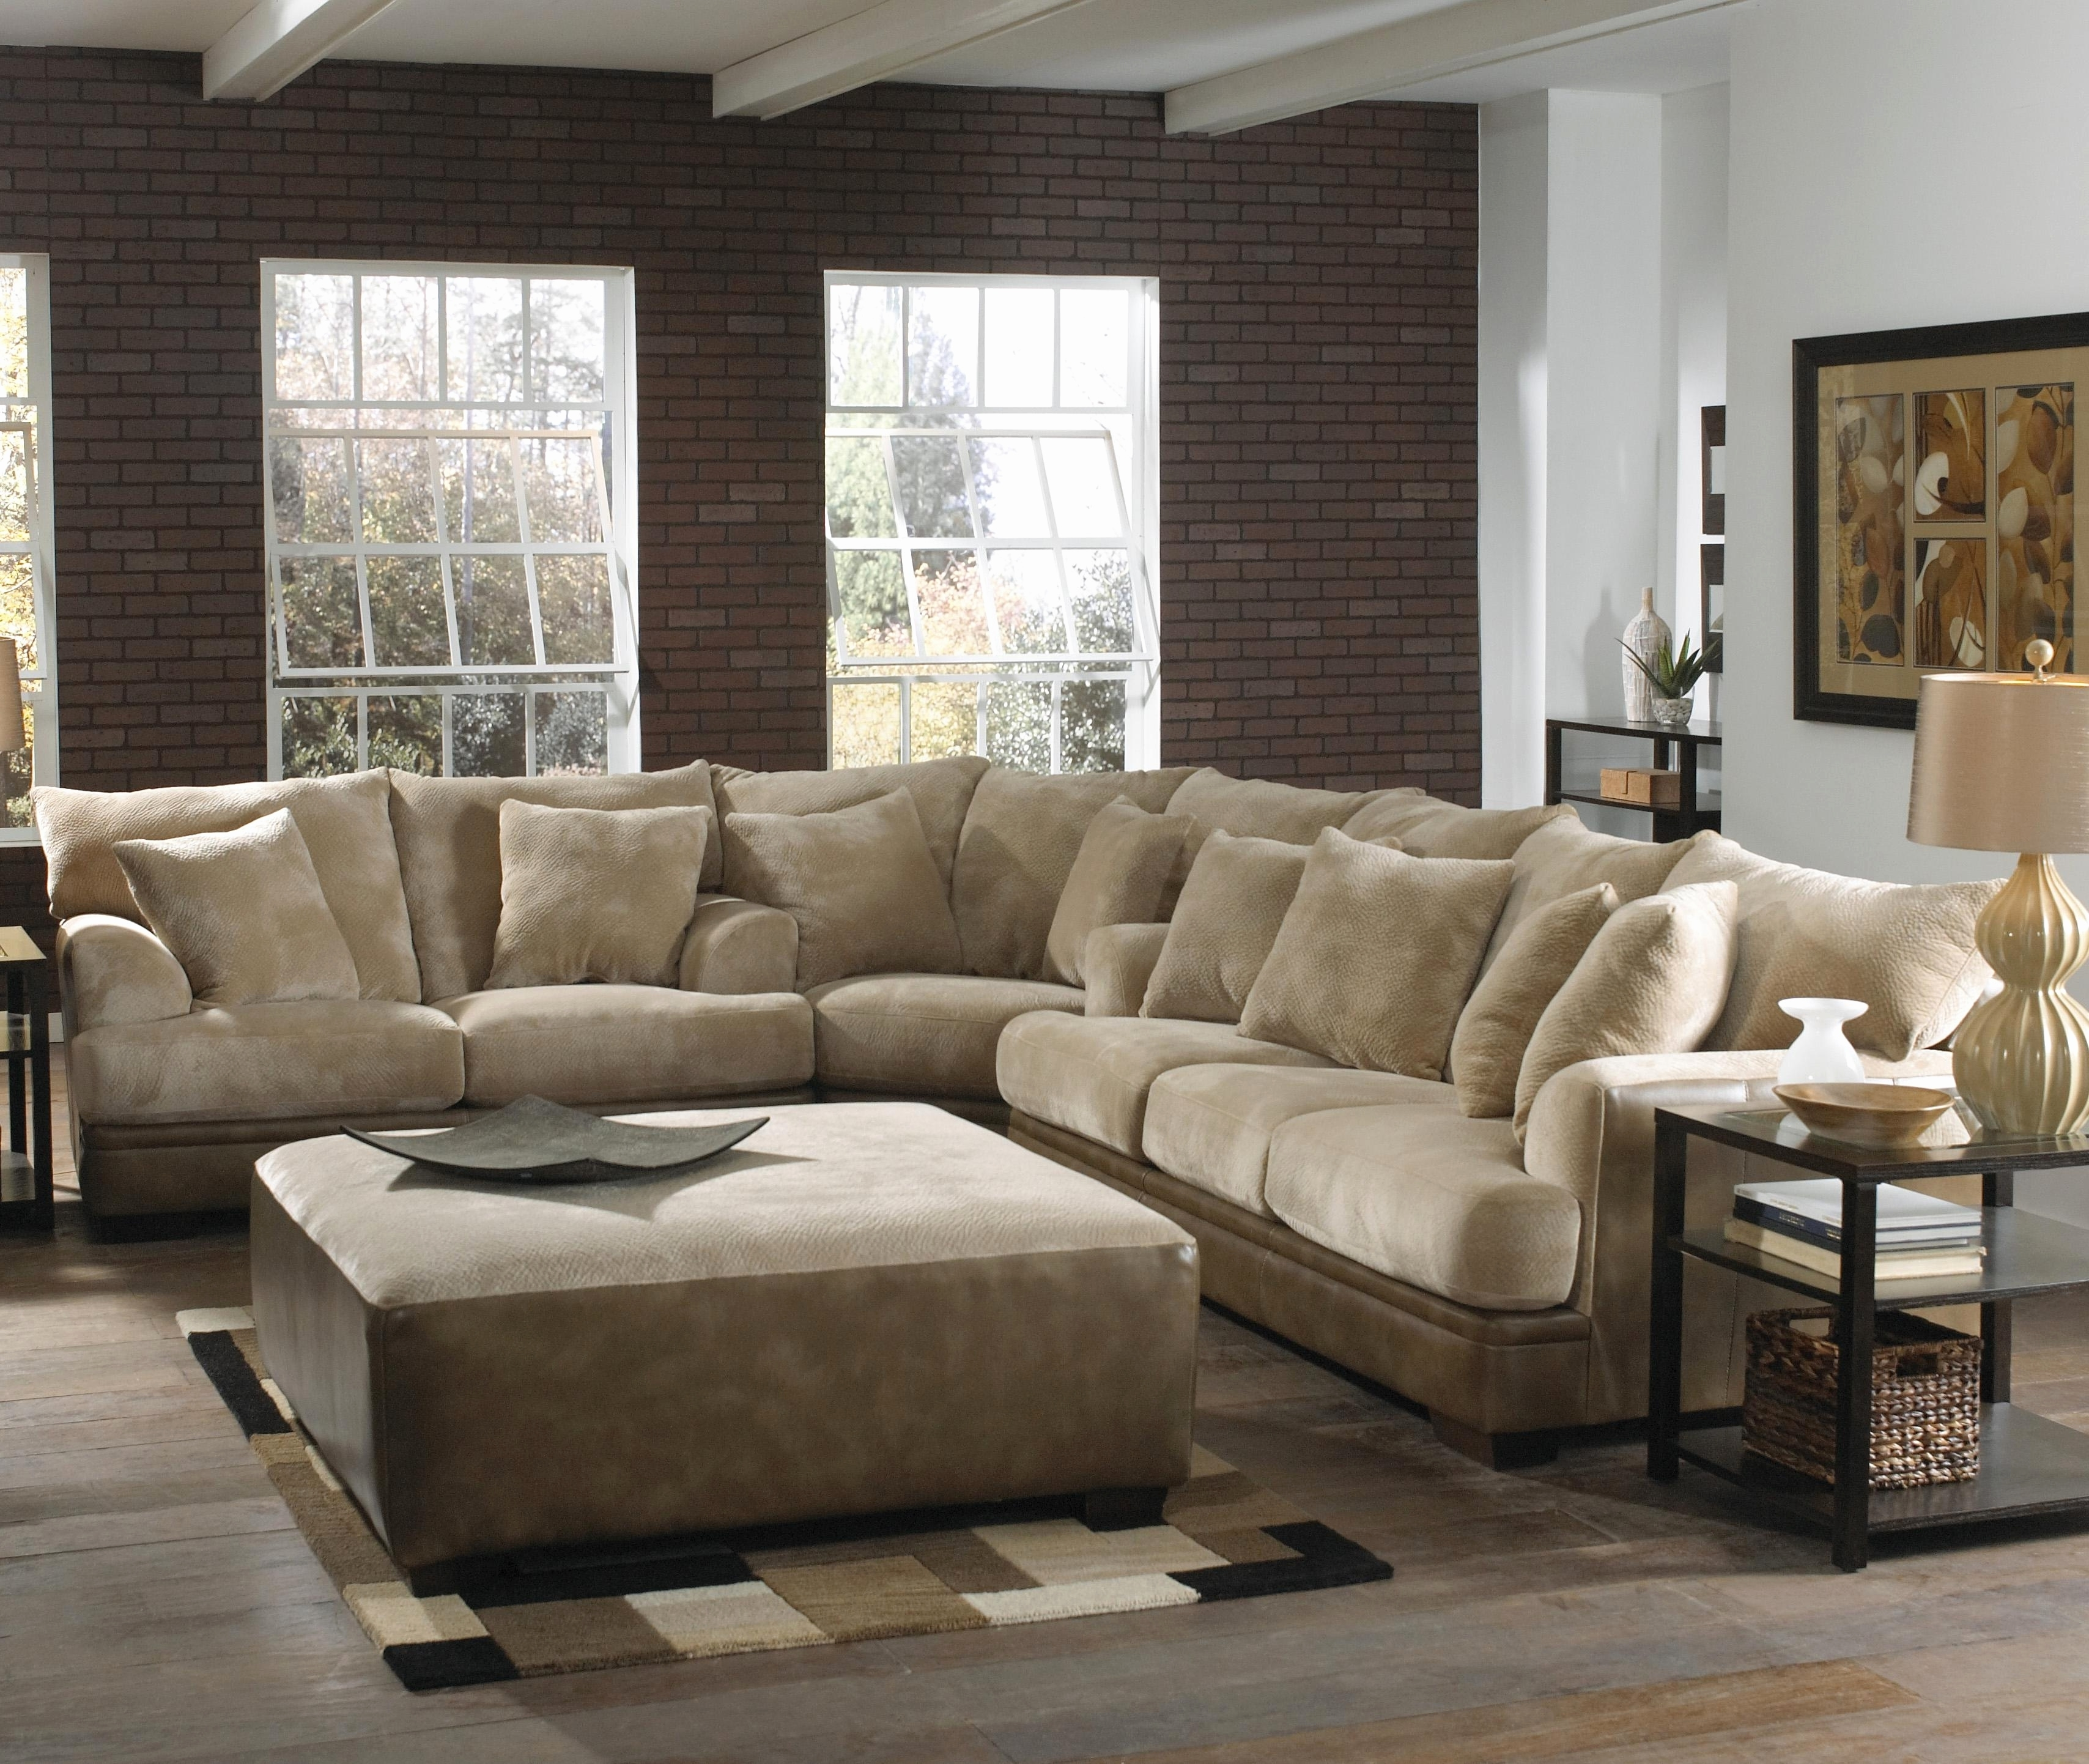 Fresh Sectional Sofa With Extra Wide Chaise 2018 – Couches Ideas Regarding Newest Wide Sectional Sofas (View 11 of 15)